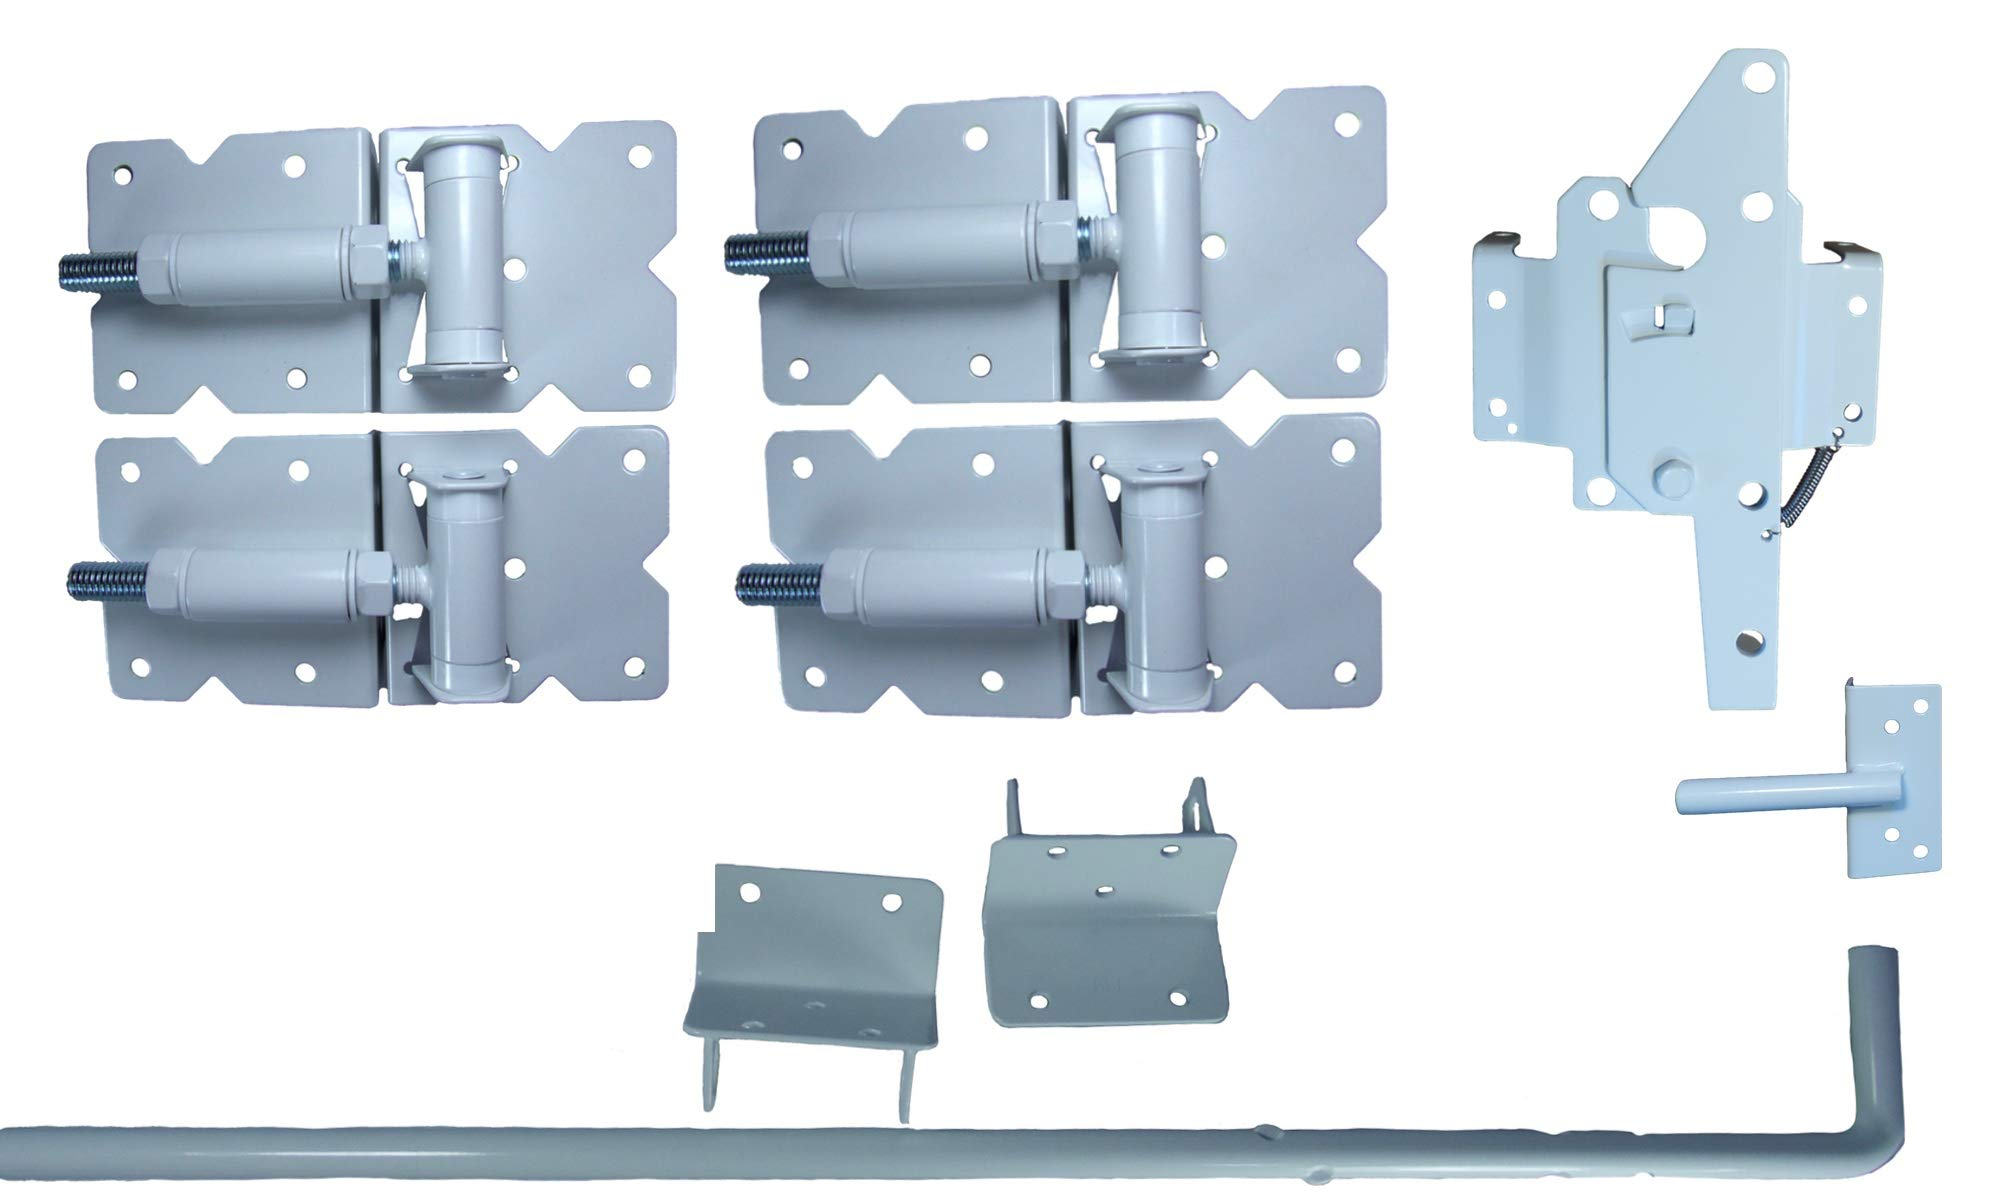 Vinyl Fence Double Gate Kit - White (Vinyl Gate Hinges, Latch and Drop Rod)